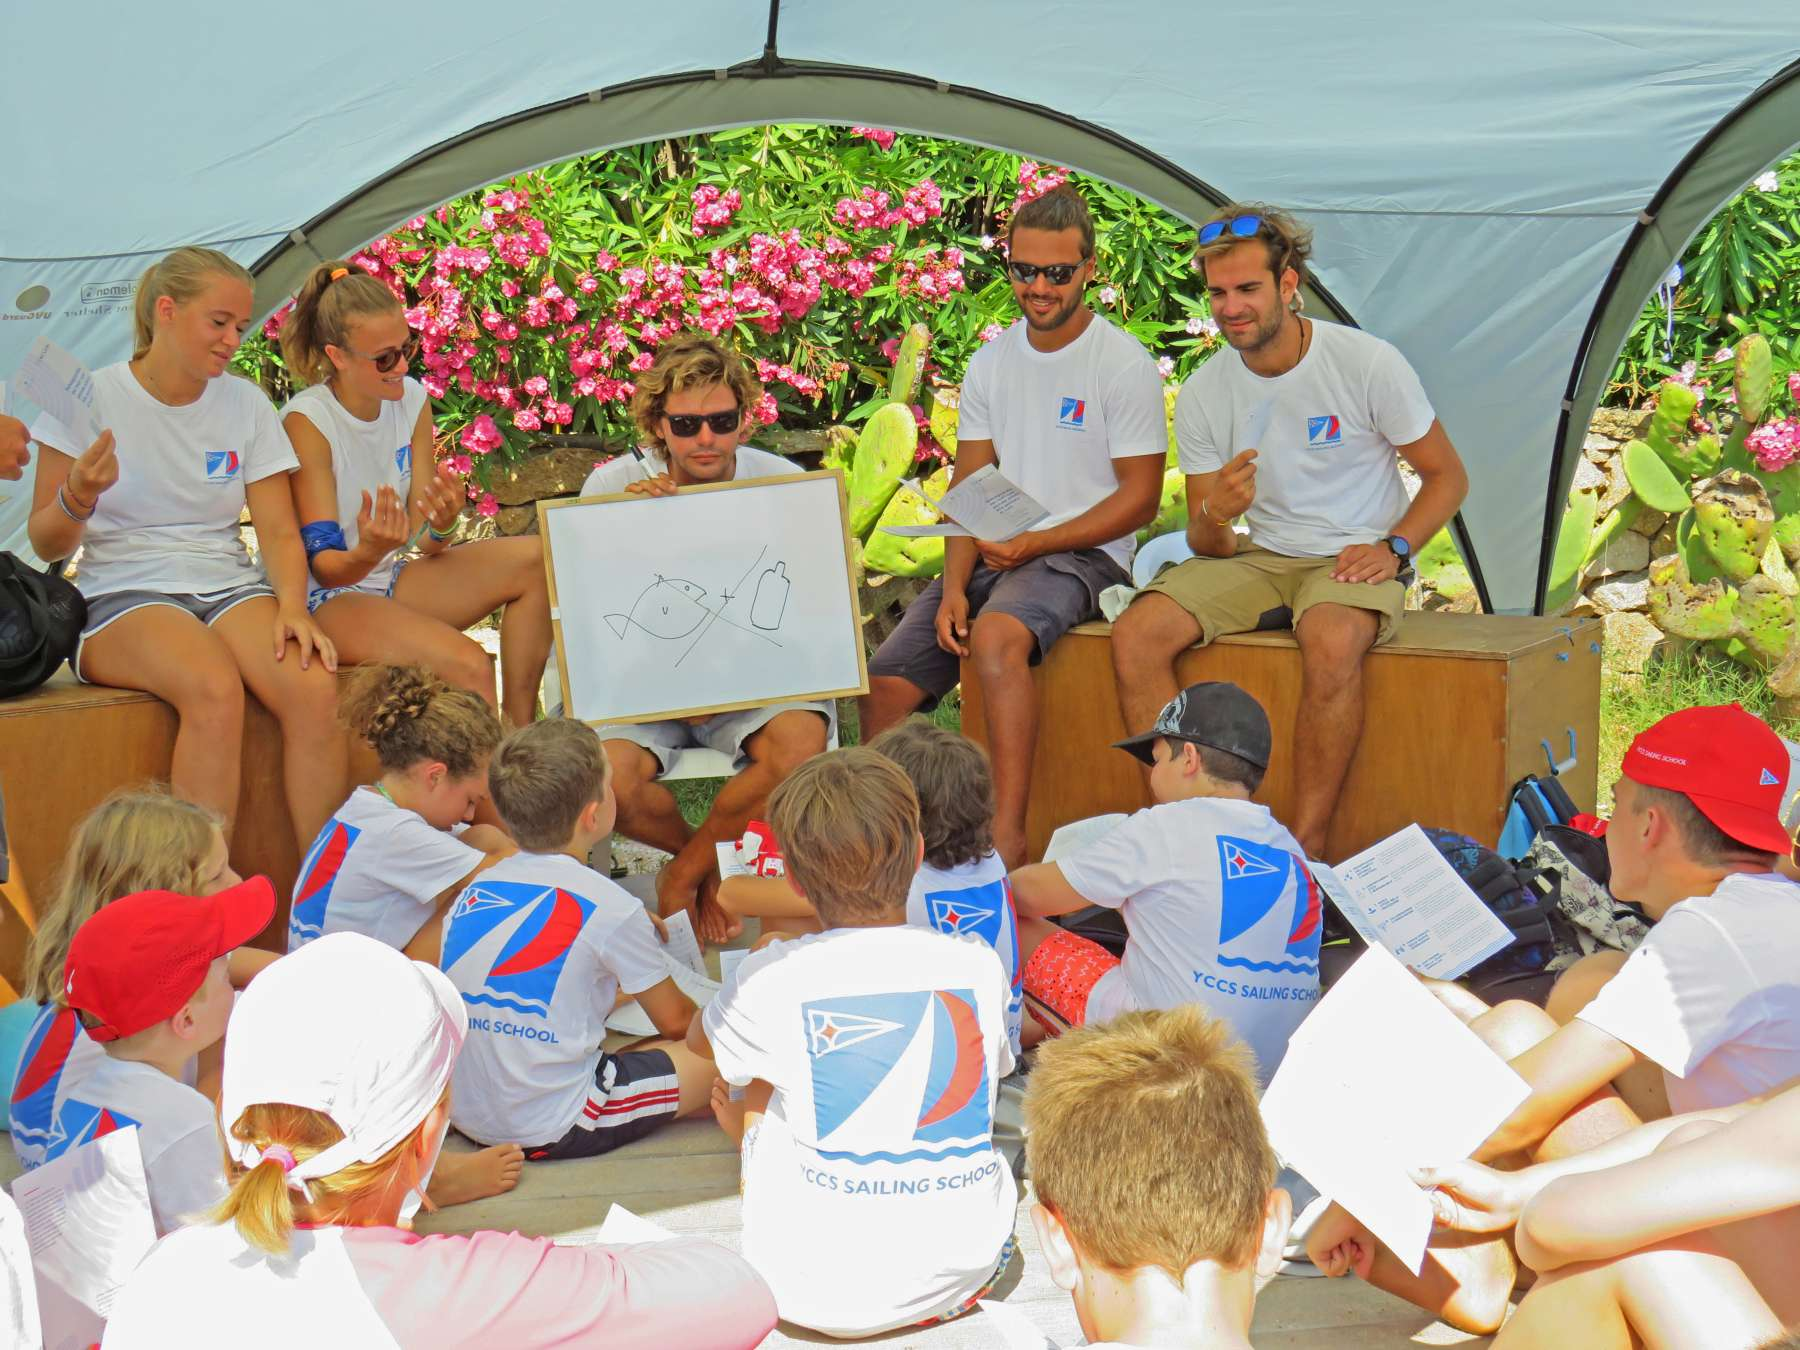 Secondo YCCS Clean Beach Day con la Scuola Vela del Club - NEWS - Yacht Club Costa Smeralda